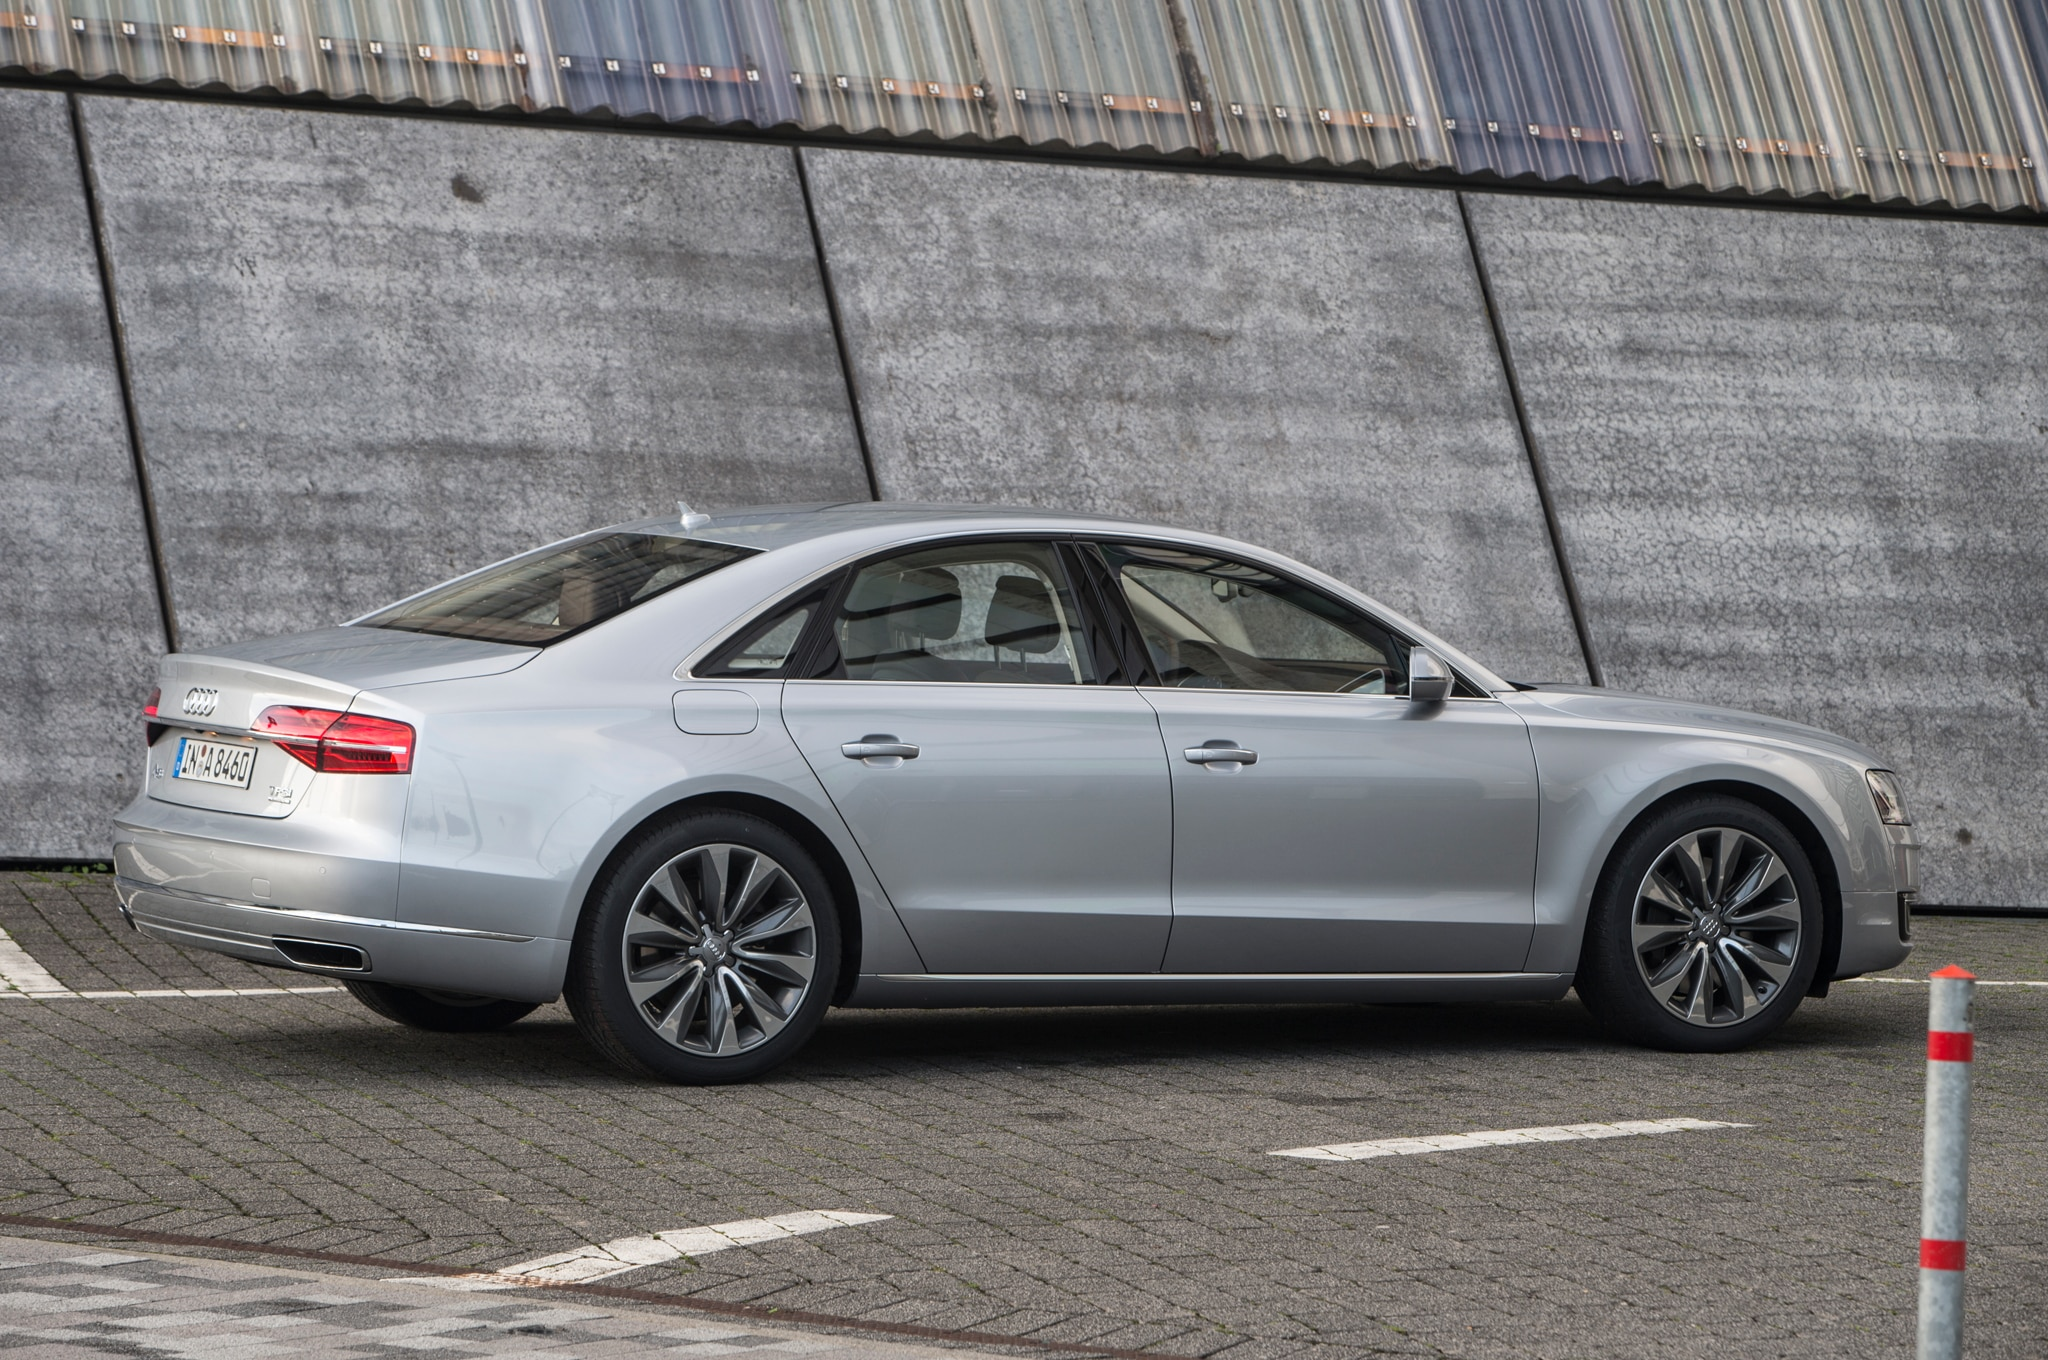 2016 Audi A8 L Gains 4.0T Sport Model with Extra Power, Visual Tweaks